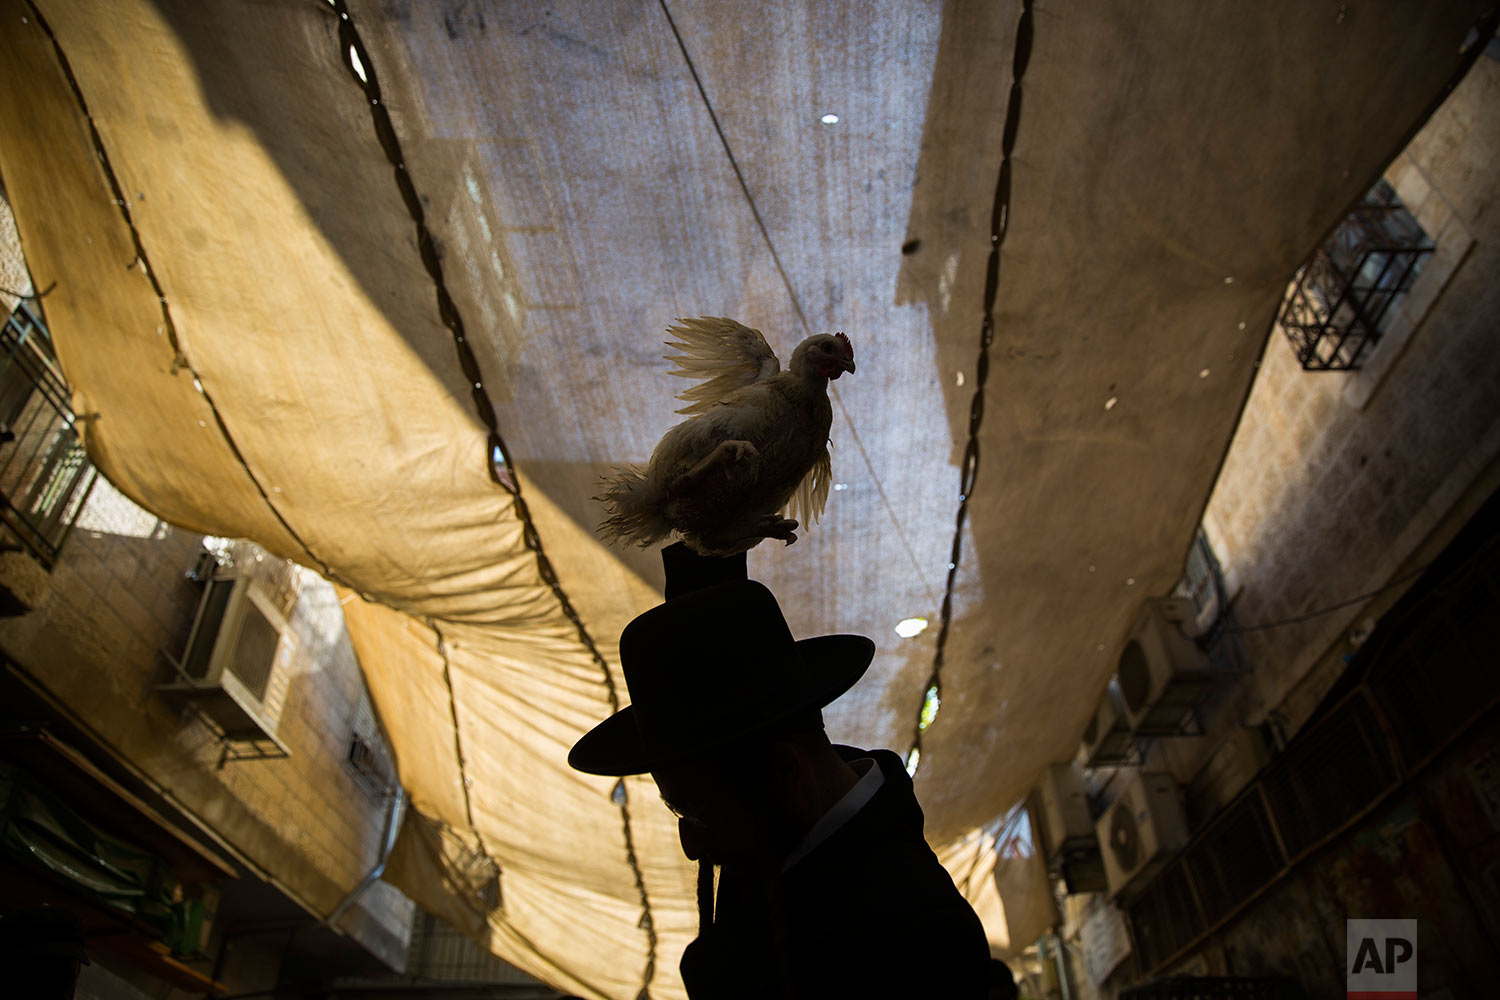 An ultra-Orthodox Jewish man swings a chicken over his head as part of the Kaparot ritual in Jerusalem, Wednesday, Sept. 27, 2017. (AP Photo/Oded Balilty)